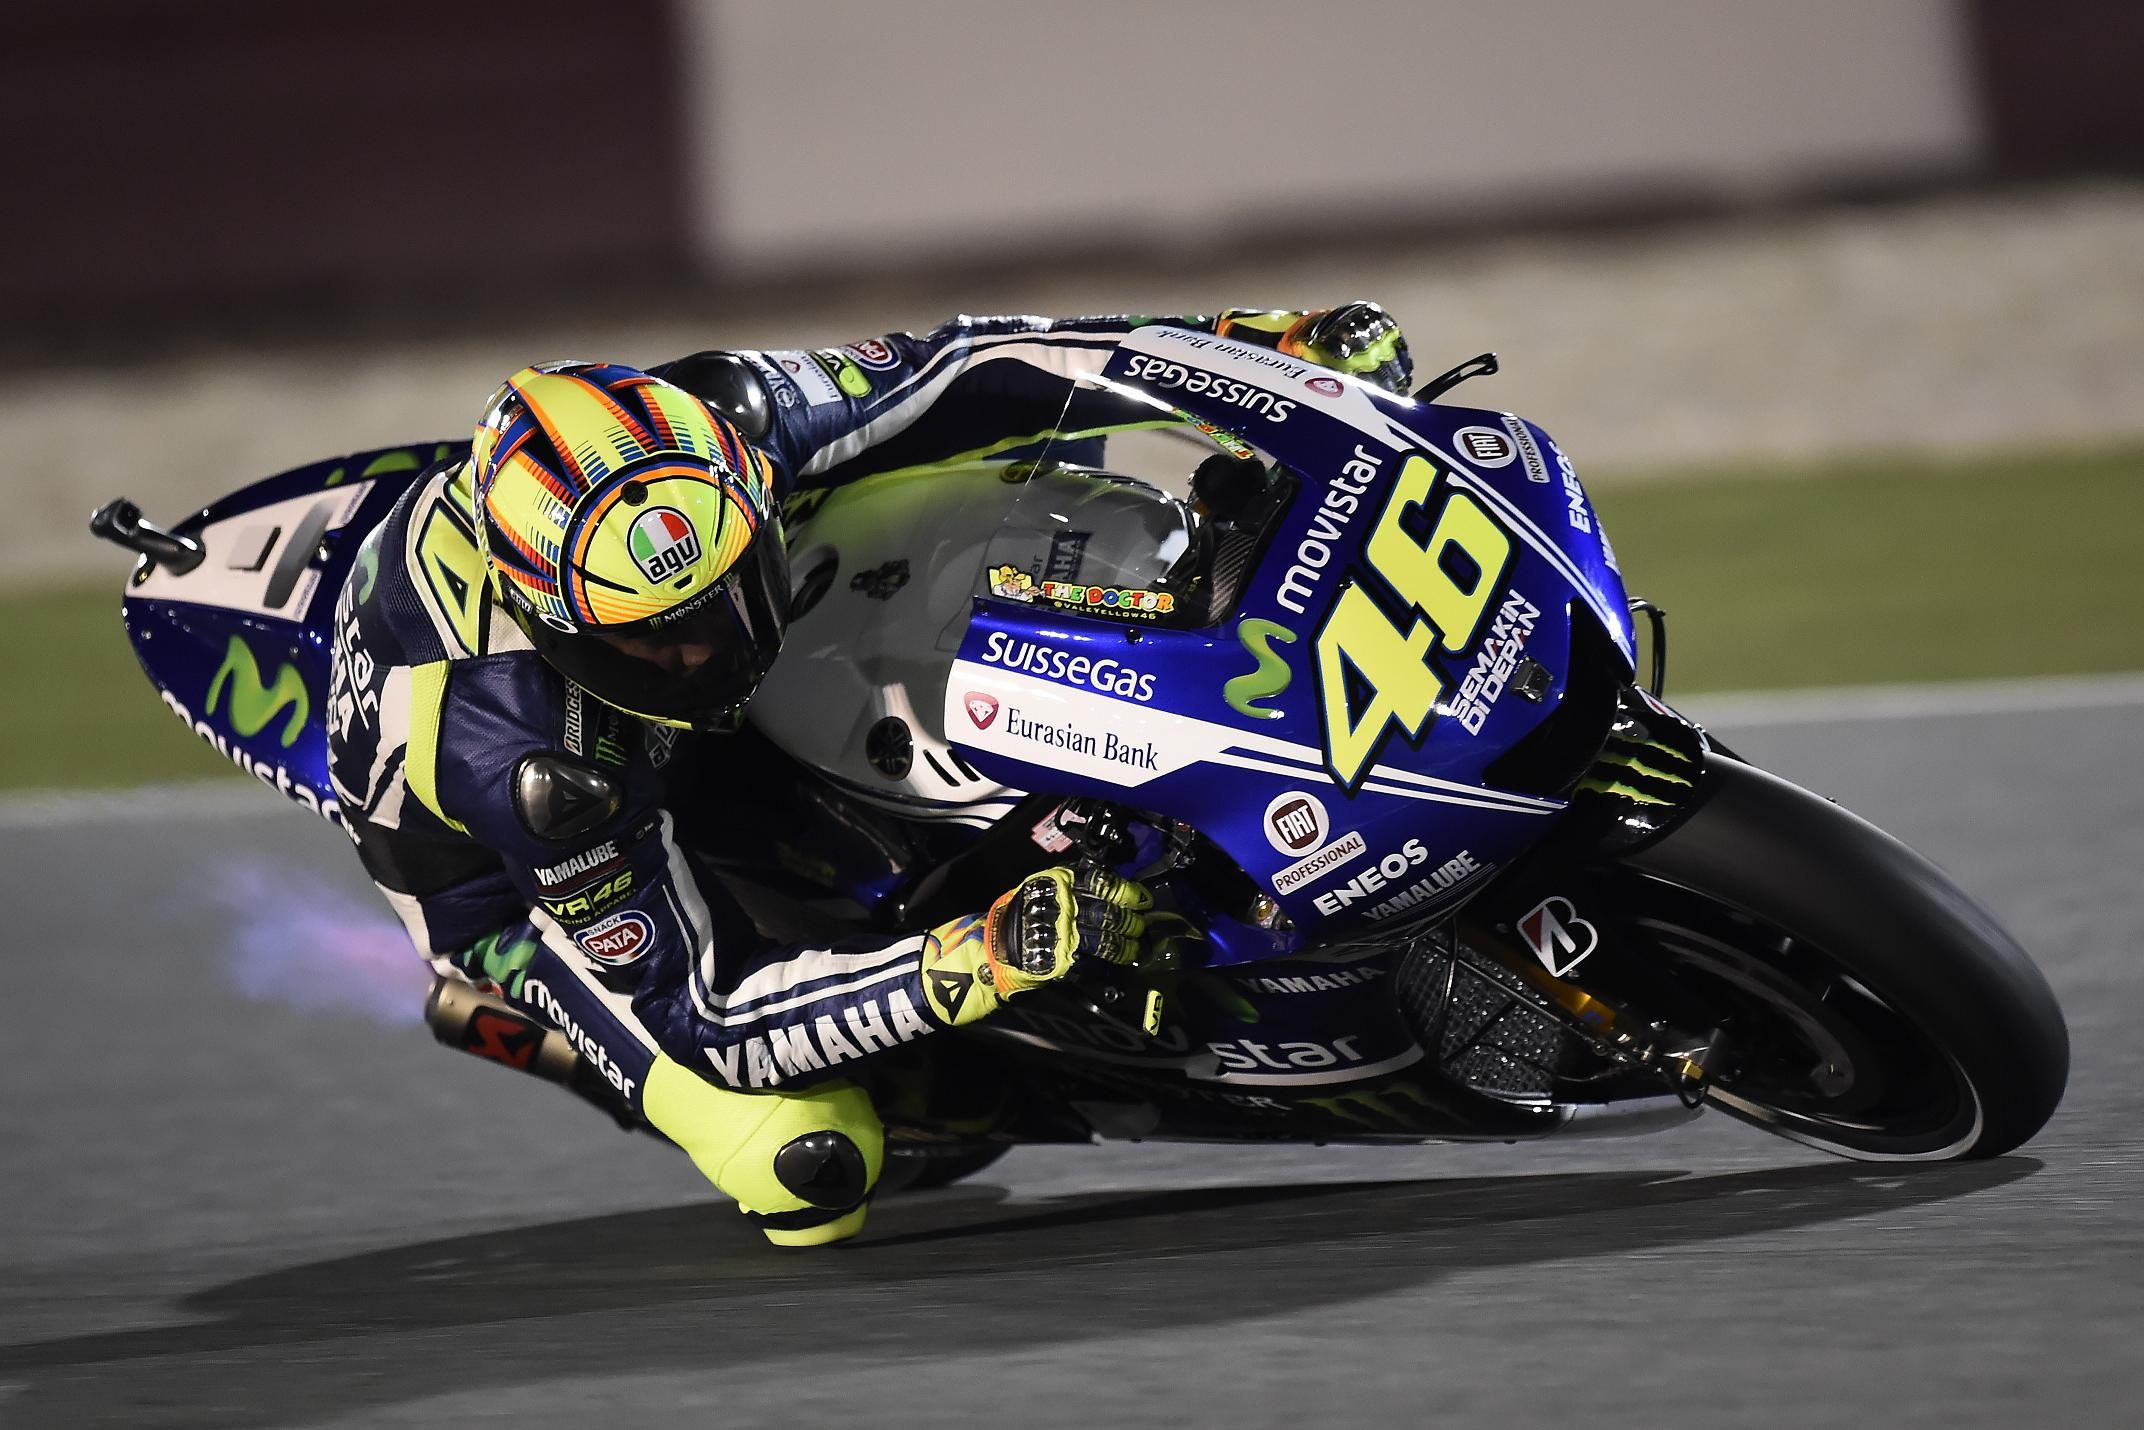 valentino rossi movistar yamaha 2014 motogp wallpaper wide or hd male celebrities wallpapers. Black Bedroom Furniture Sets. Home Design Ideas